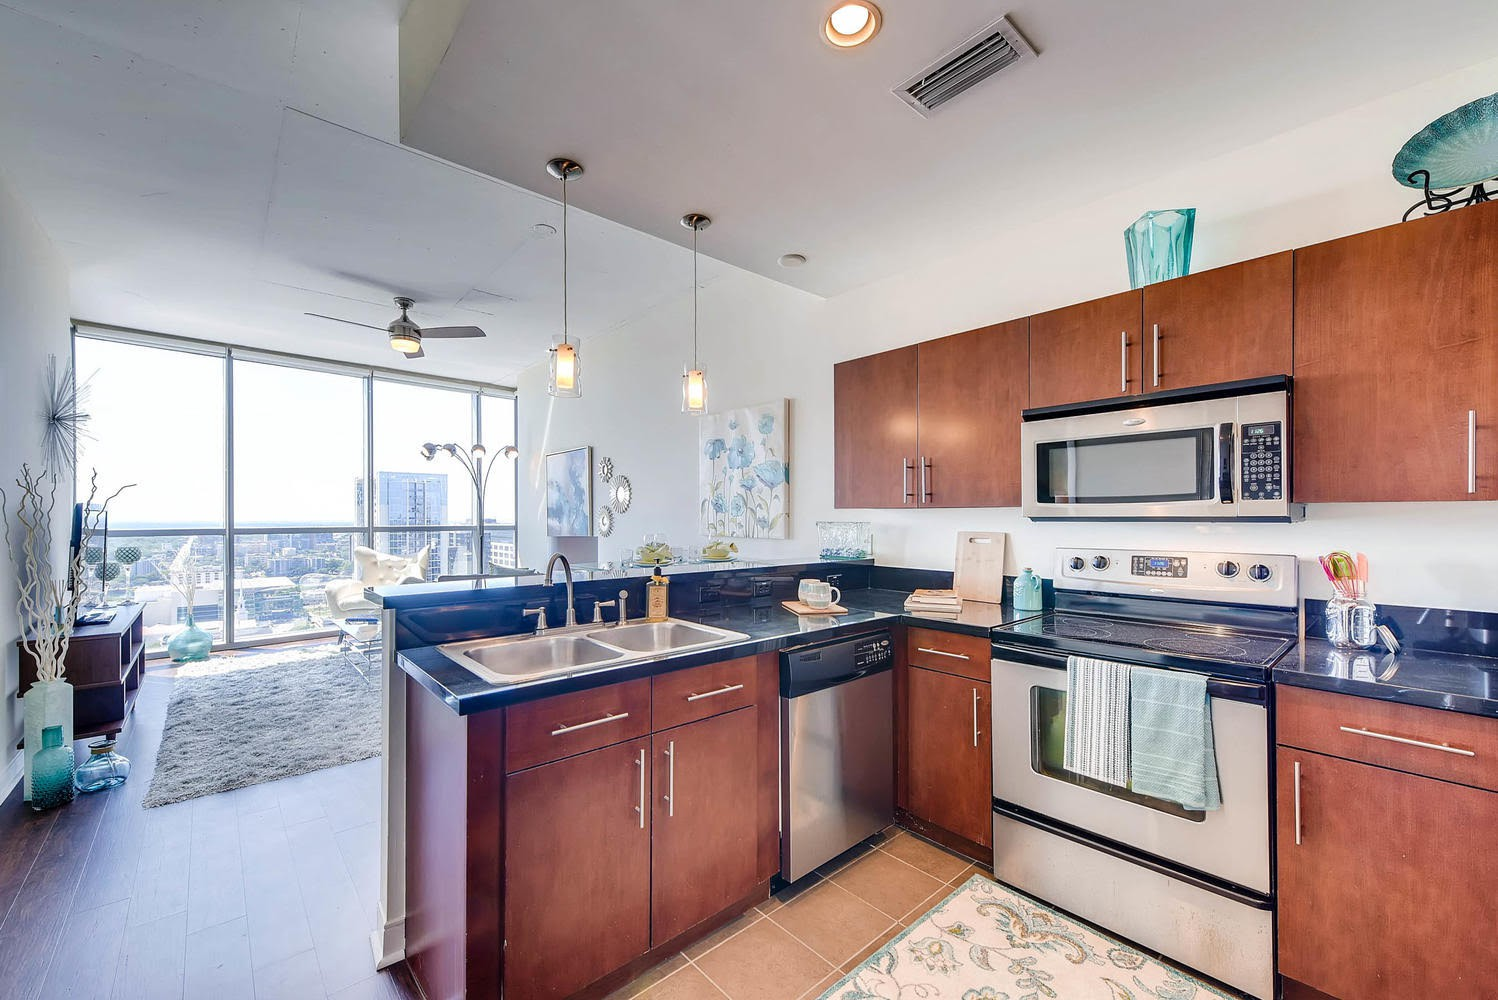 Apartments Near IADT Orlando Aspire for International Academy of Design and Technology Students in Orlando, FL